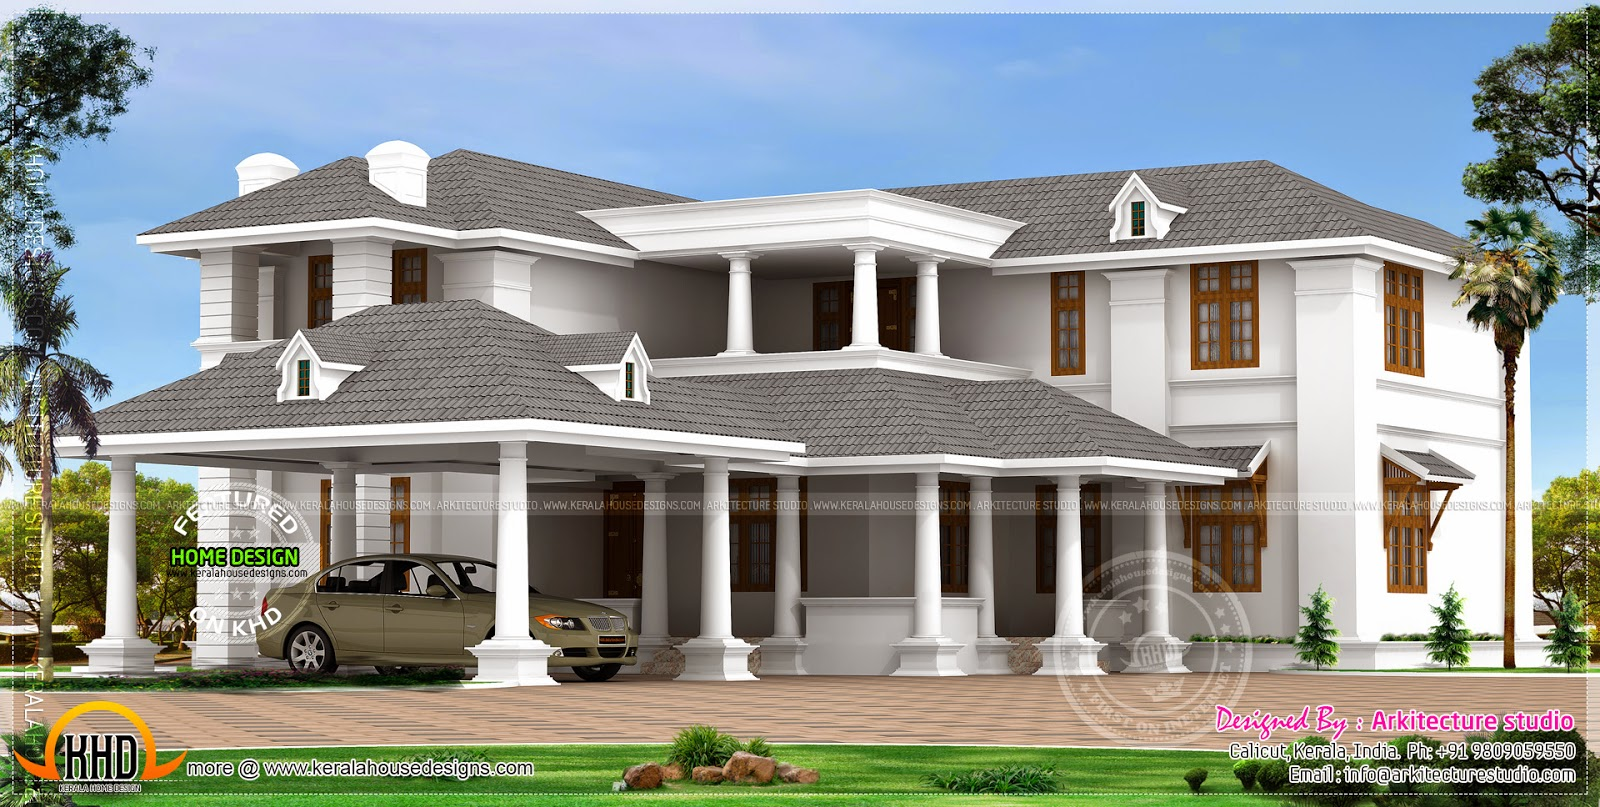 Big luxury home design kerala home design and floor plans for Big home designs